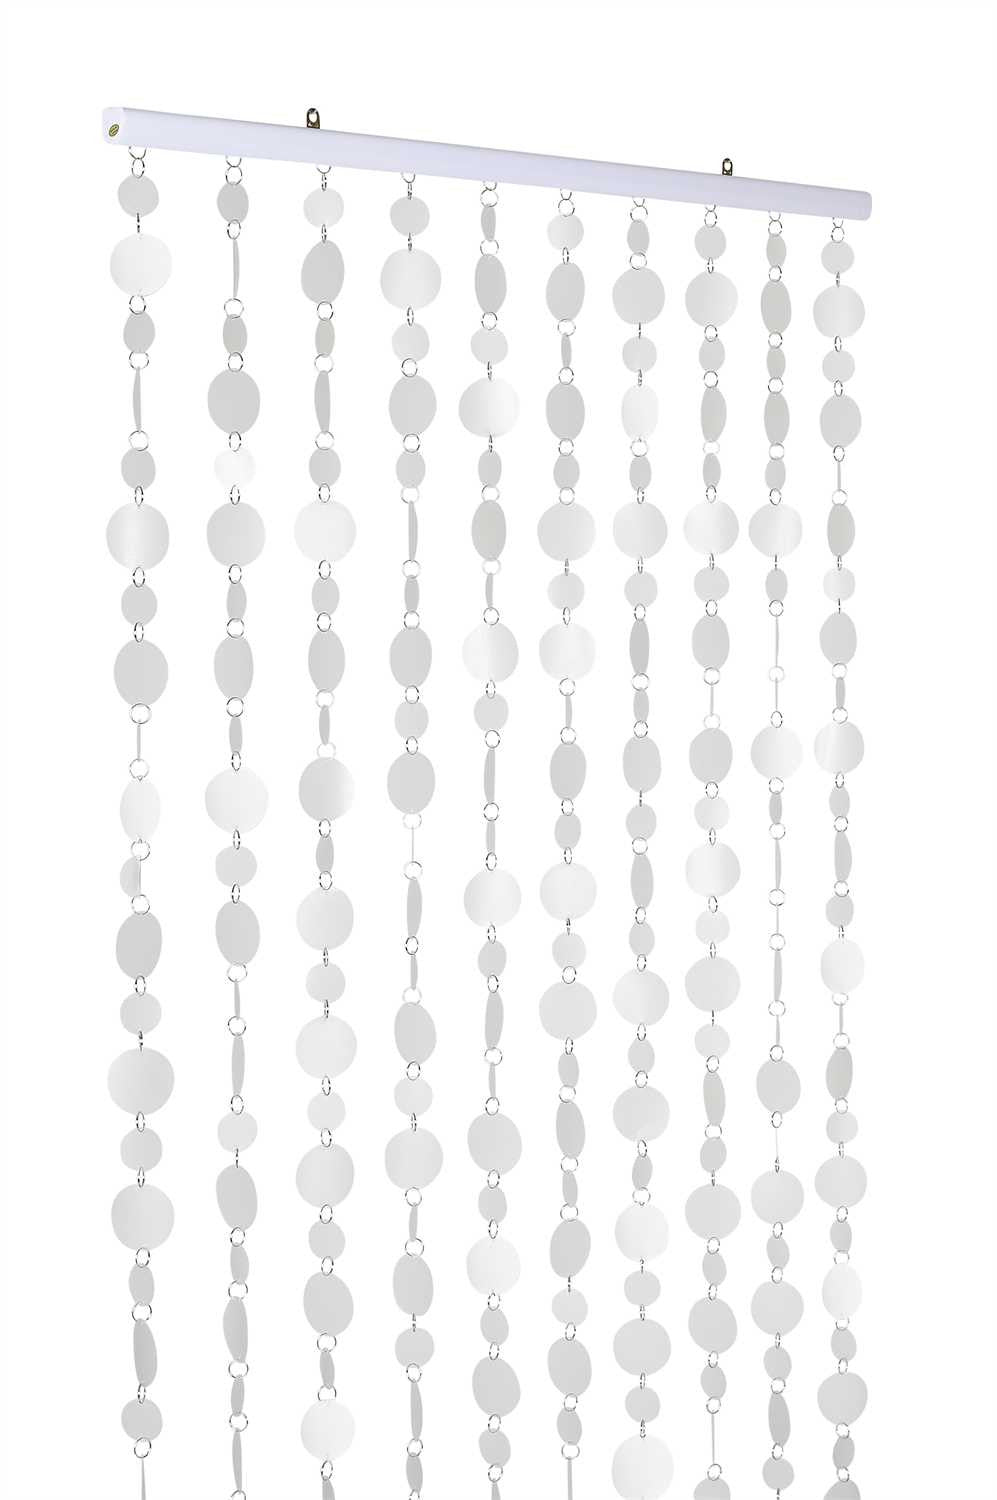 Beaded Curtains, Beads by the Spool, Feather Curtains, Door Beads.